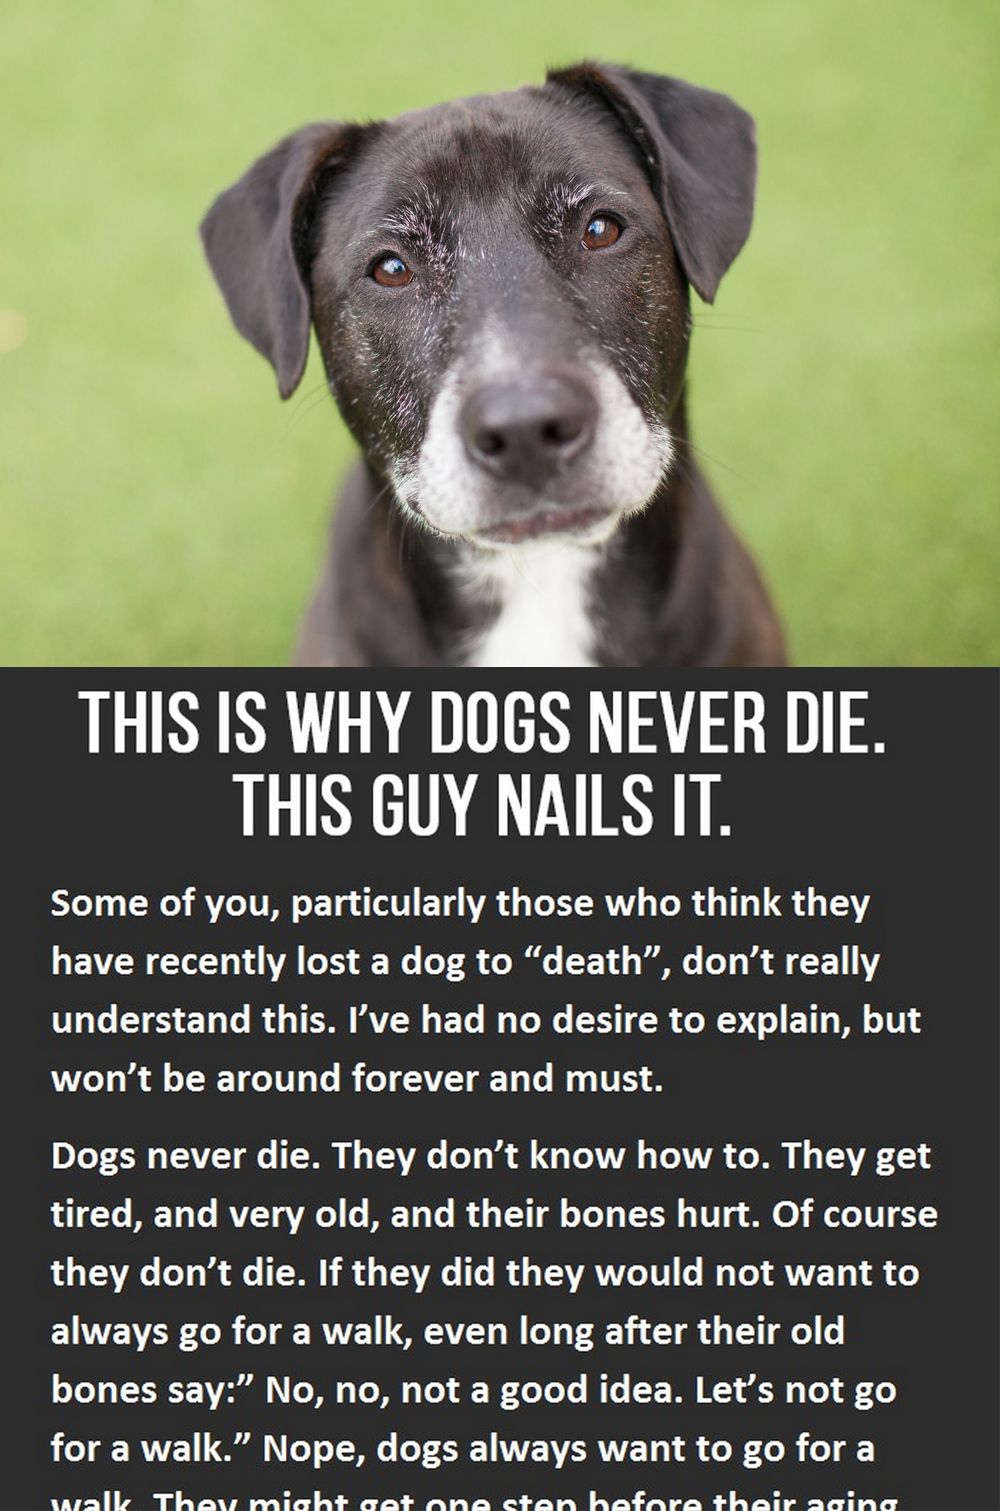 This Is Why Dogs Never Die | Dog quotes, Dogs, Losing a dog